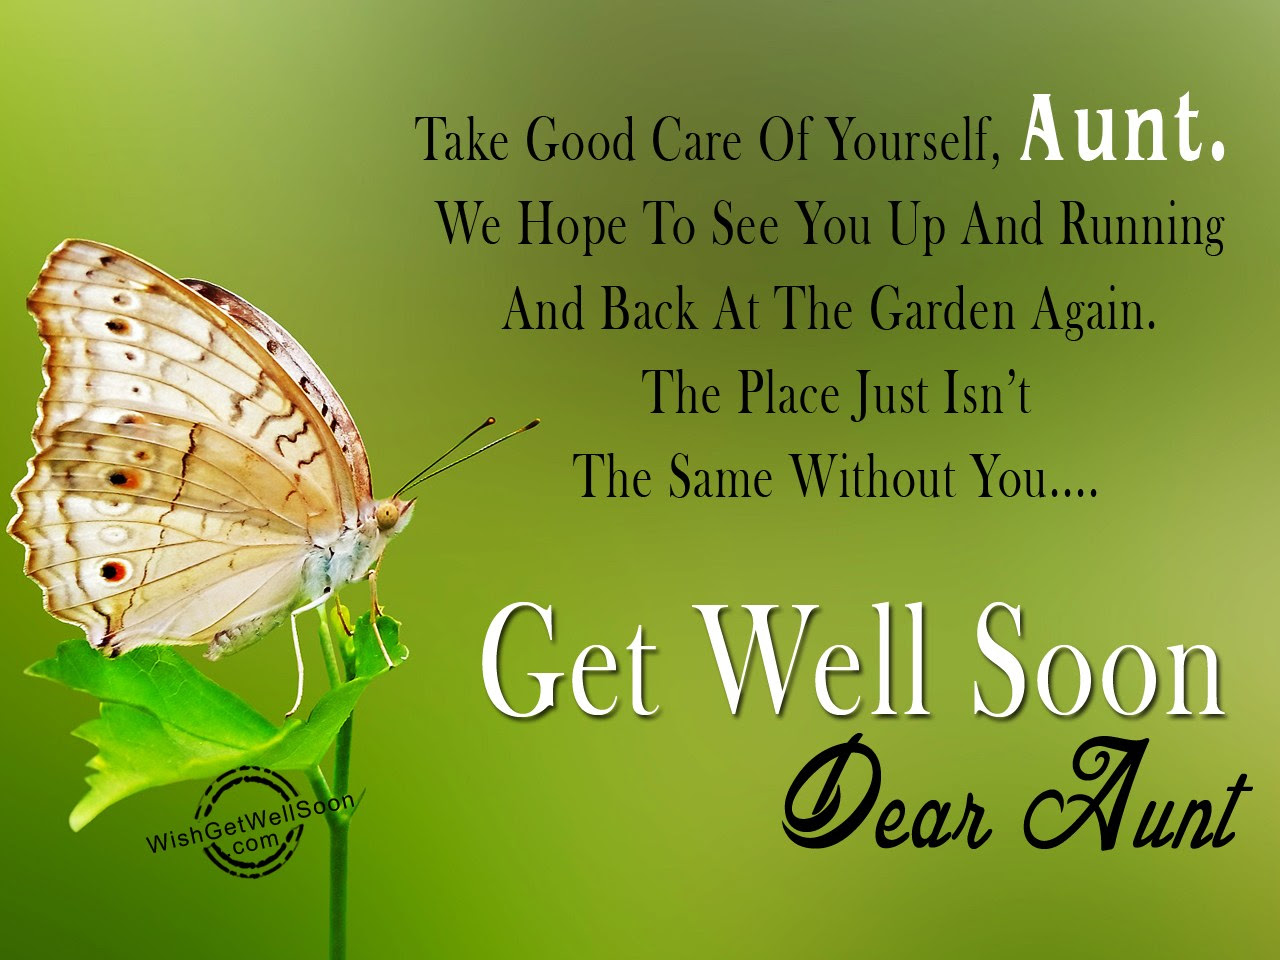 Take Good Care Of Yourself Aunt Get Well Soon